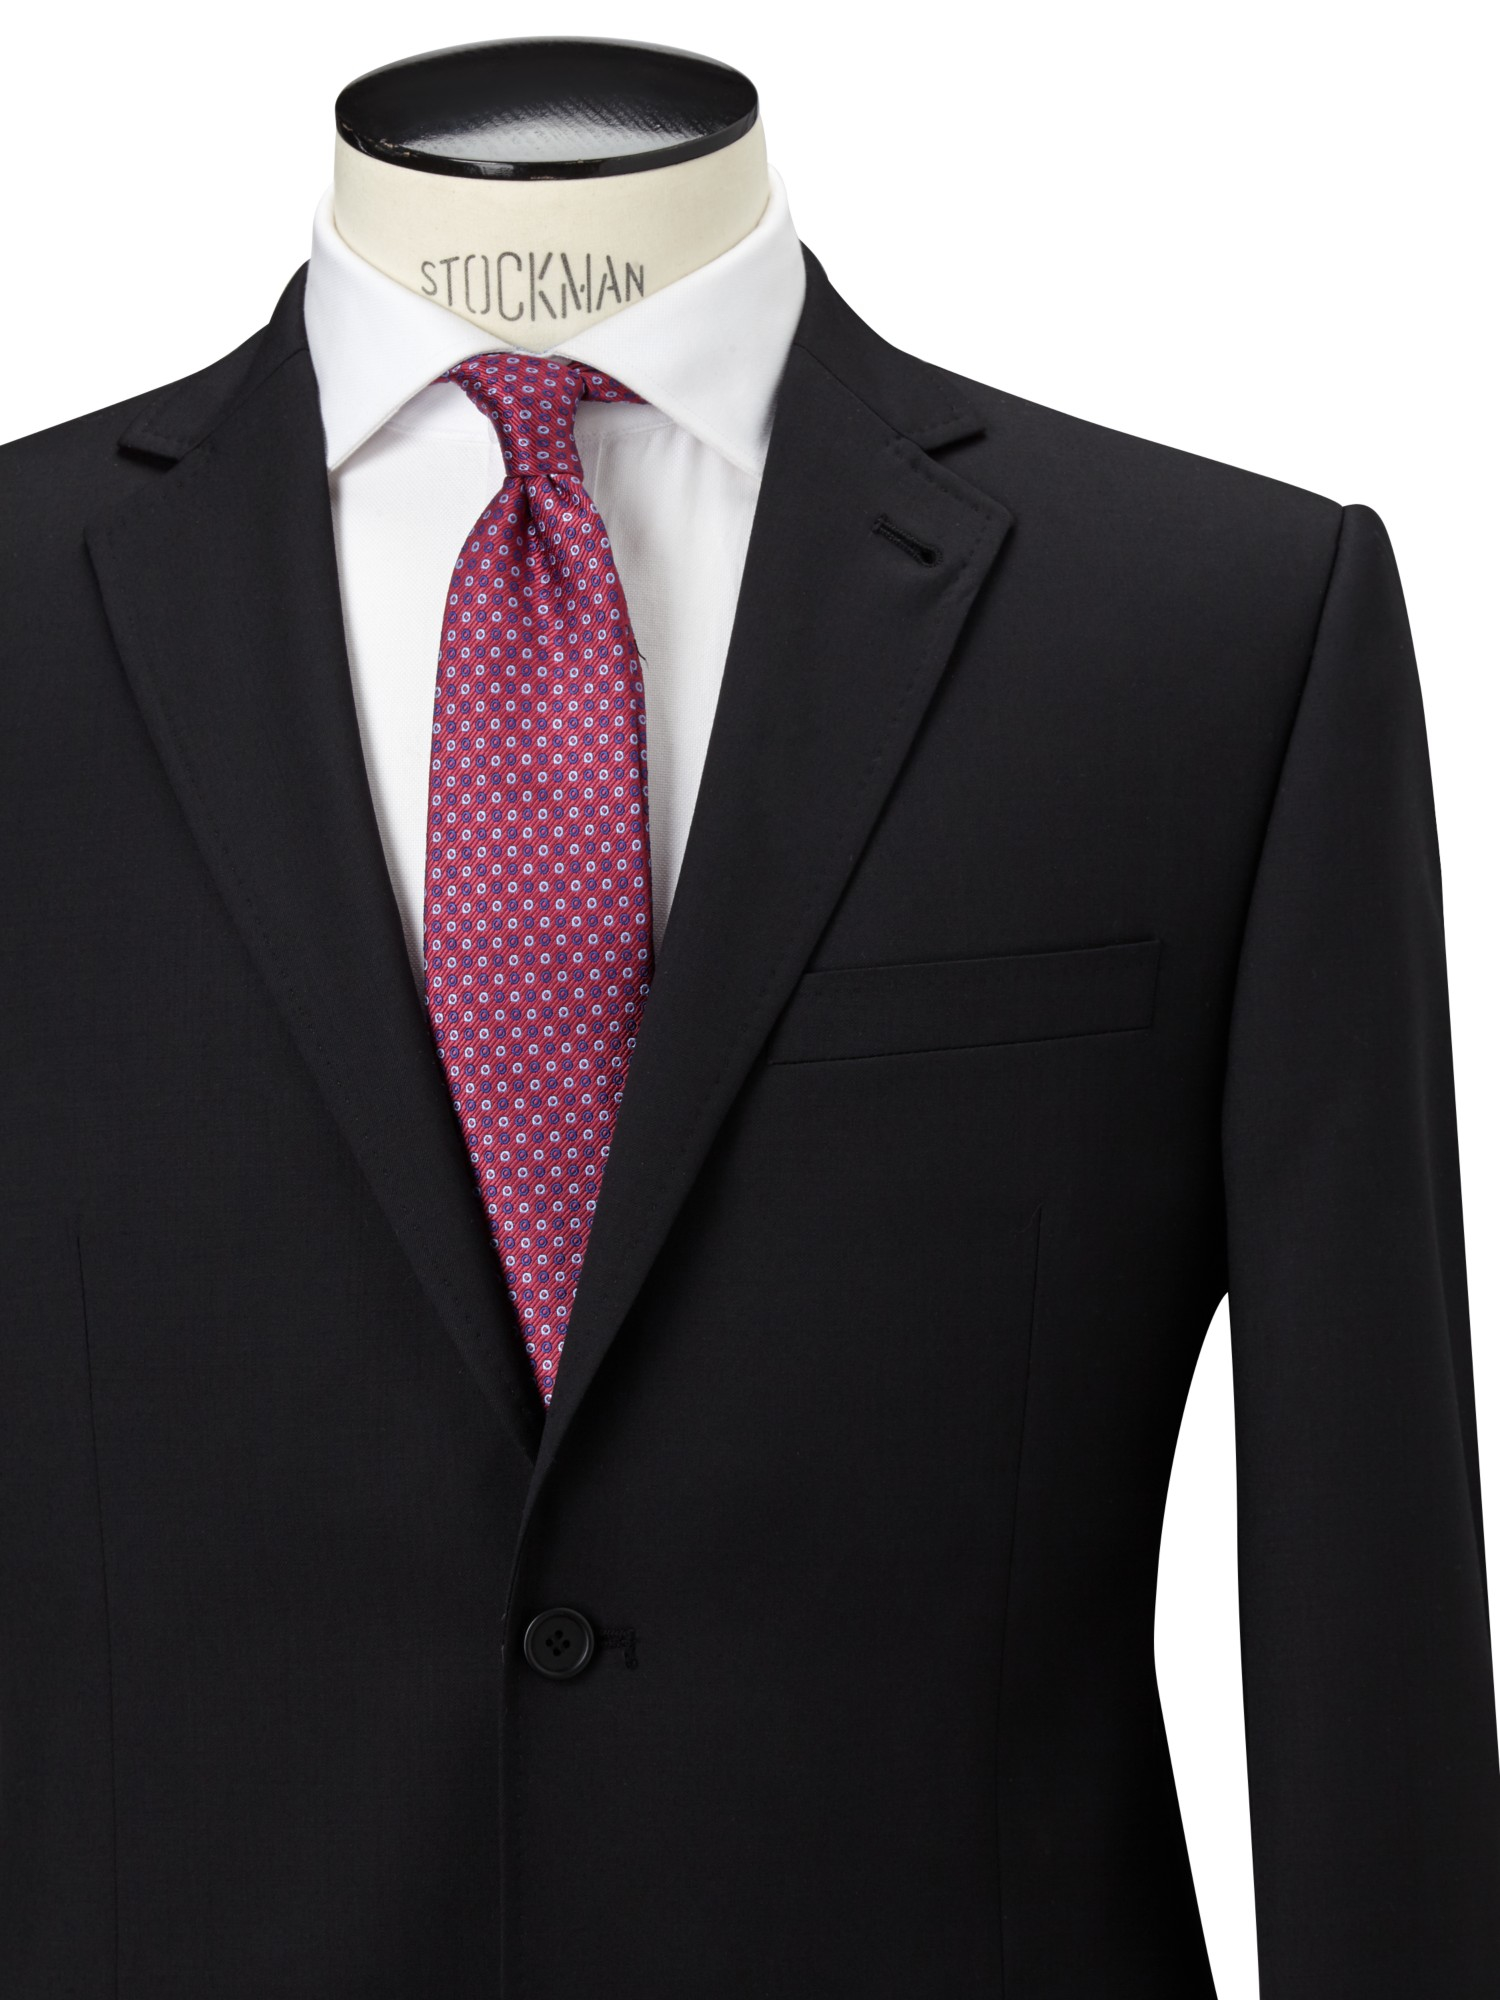 Ted Baker Wool Coinonj Tailored Fit Suit Jacket in Black for Men